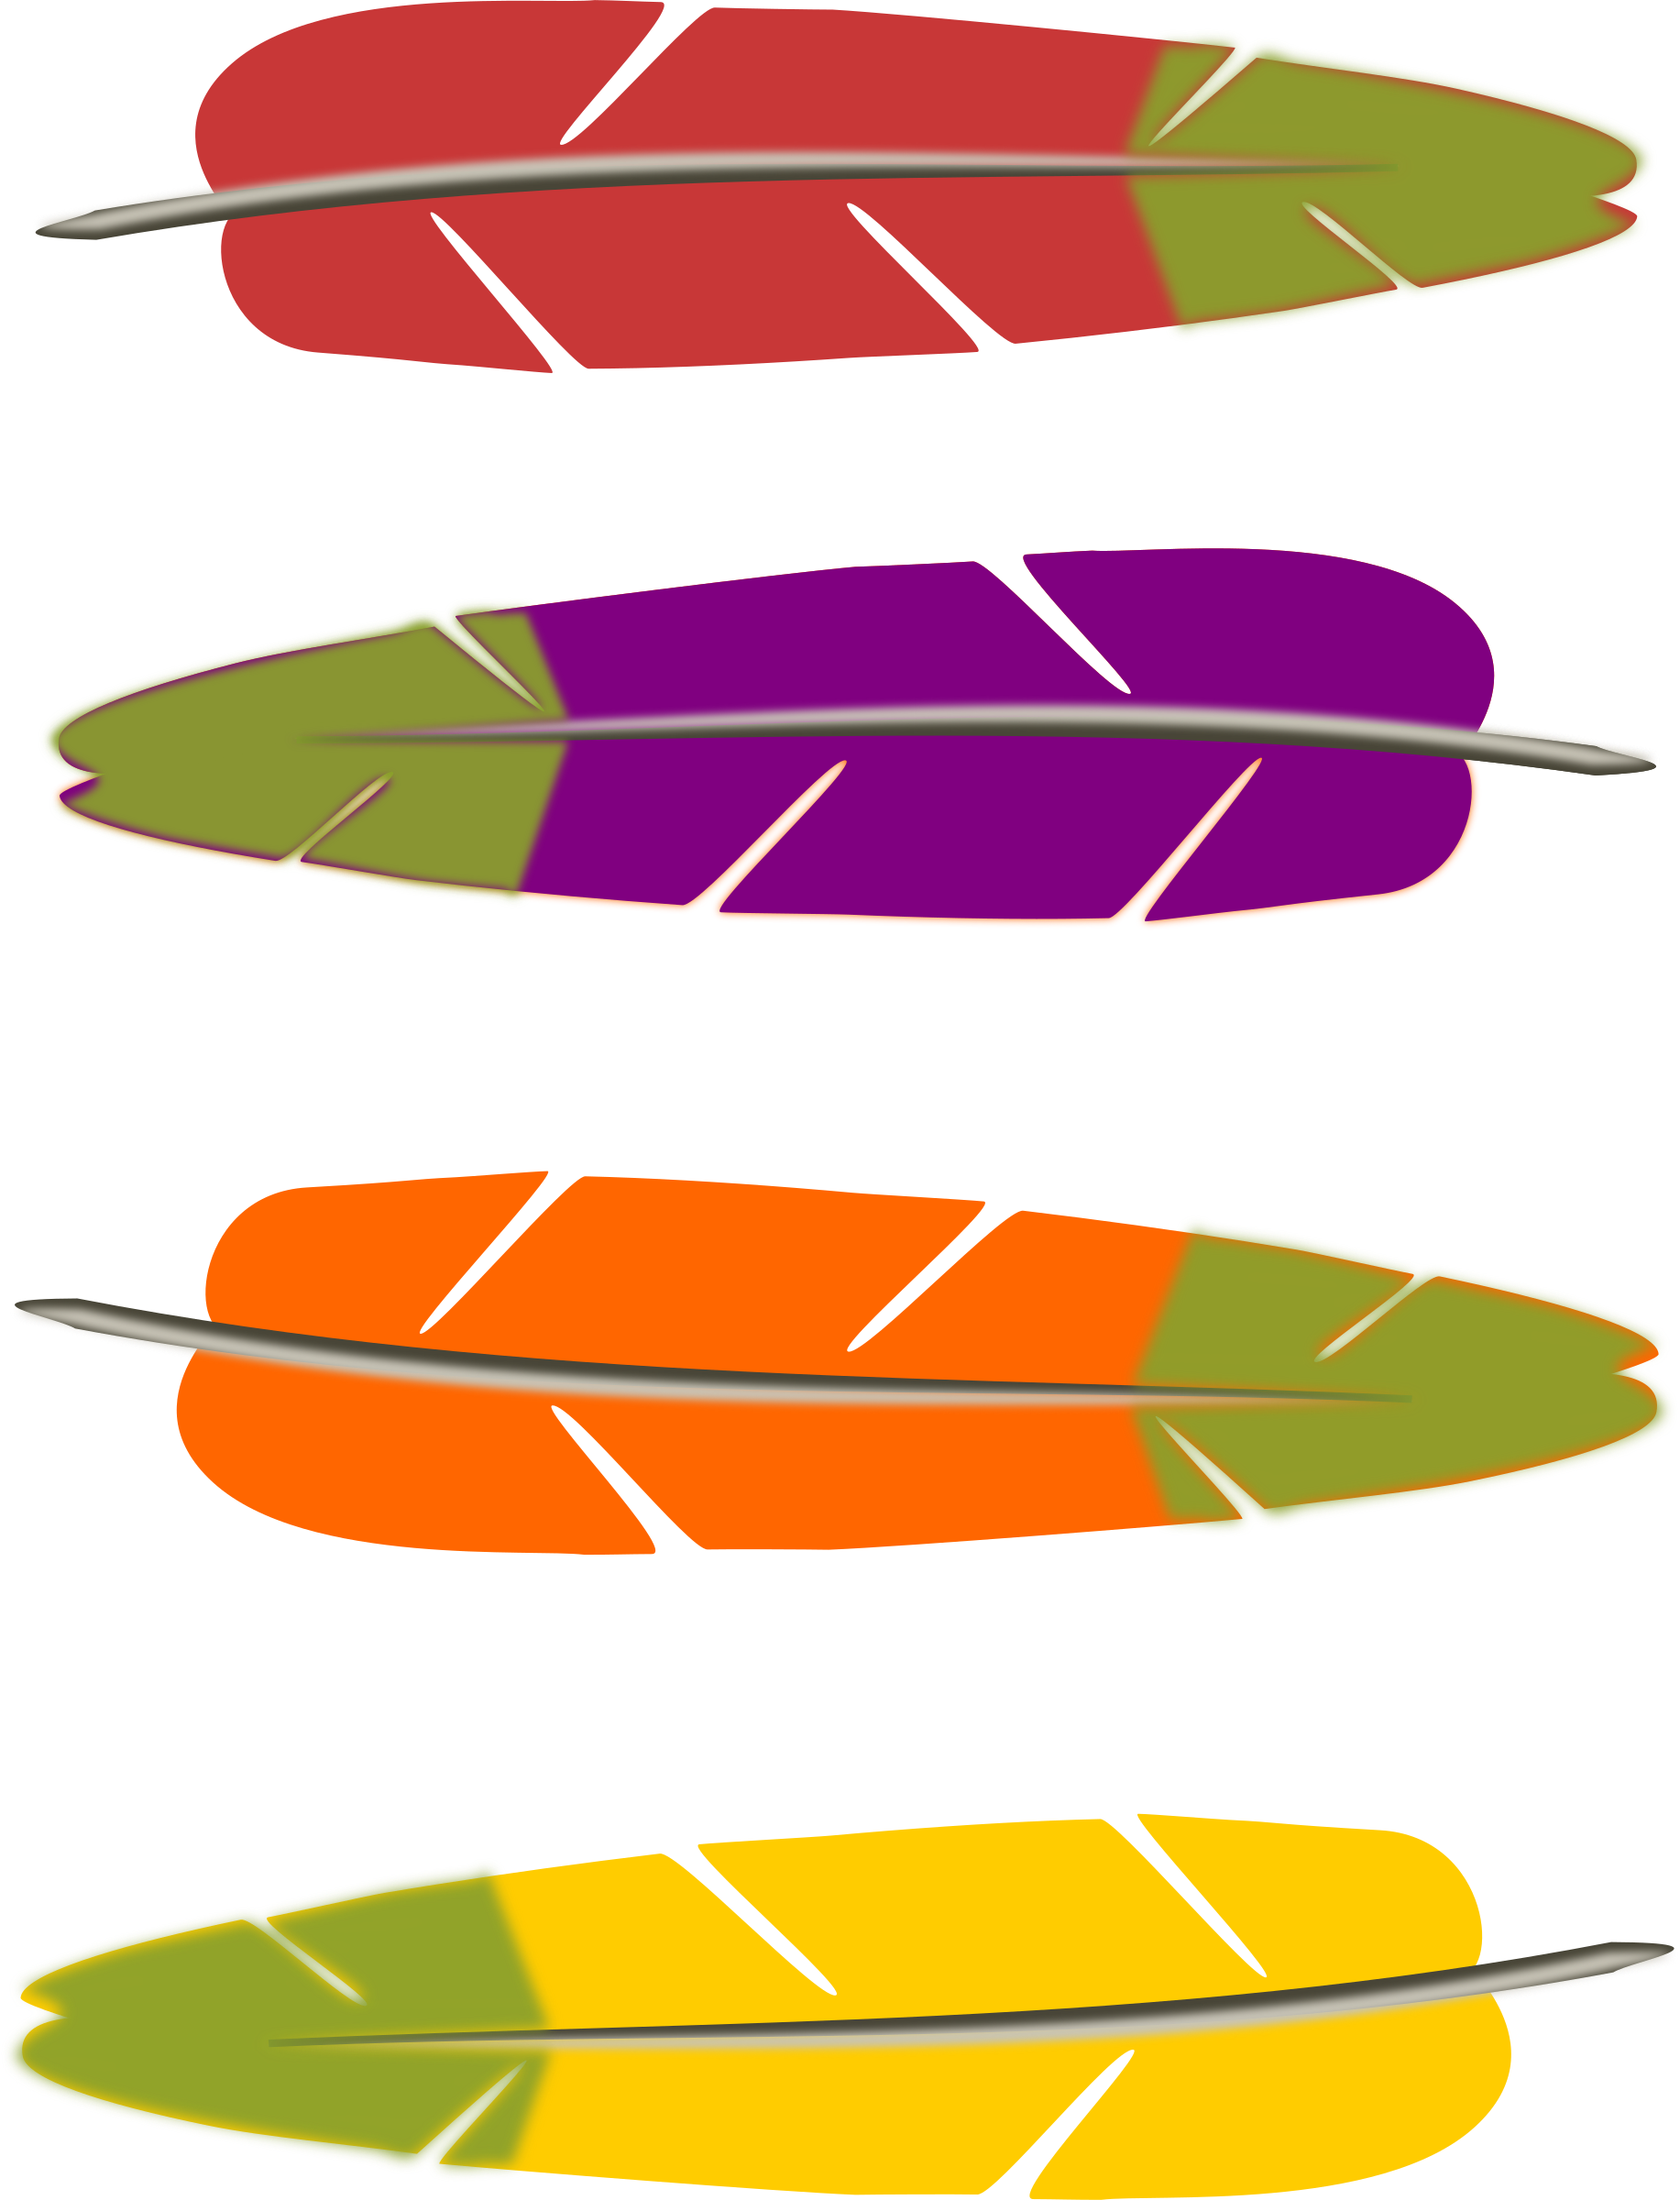 Clothespin clipart colored. Feathers by pauthonic on